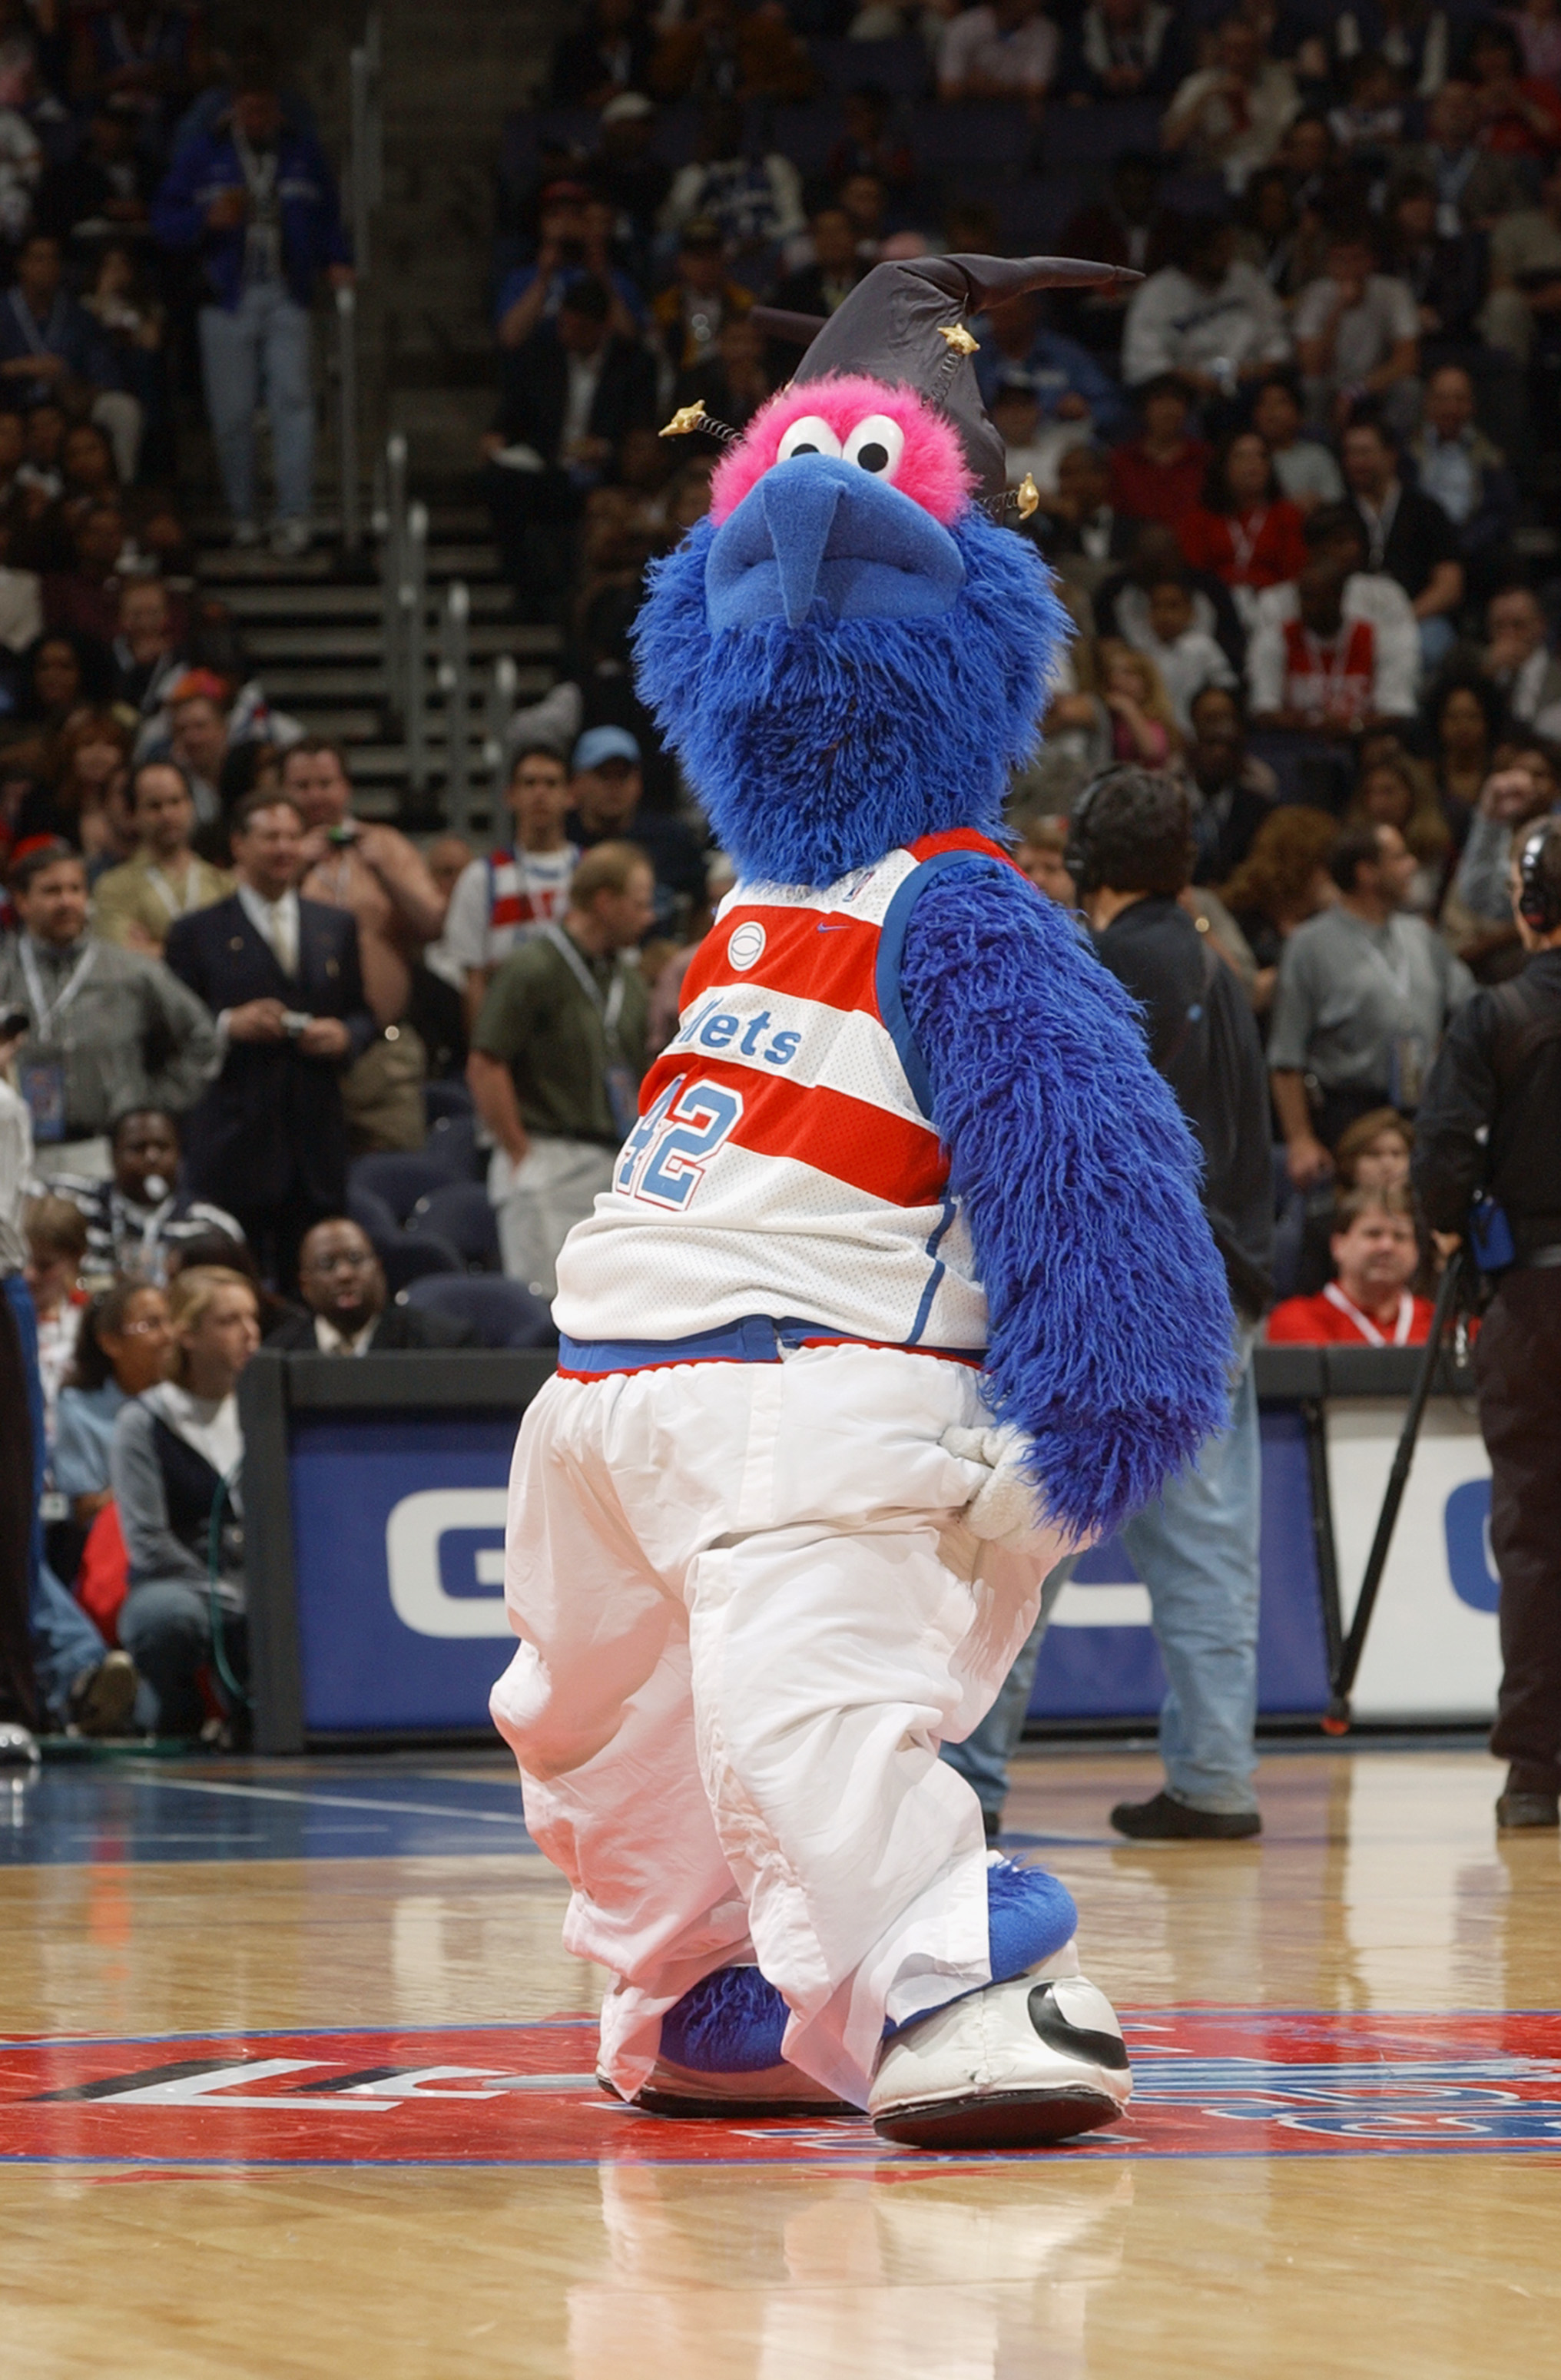 G-Wiz, the Wizards mascot entertains the fans